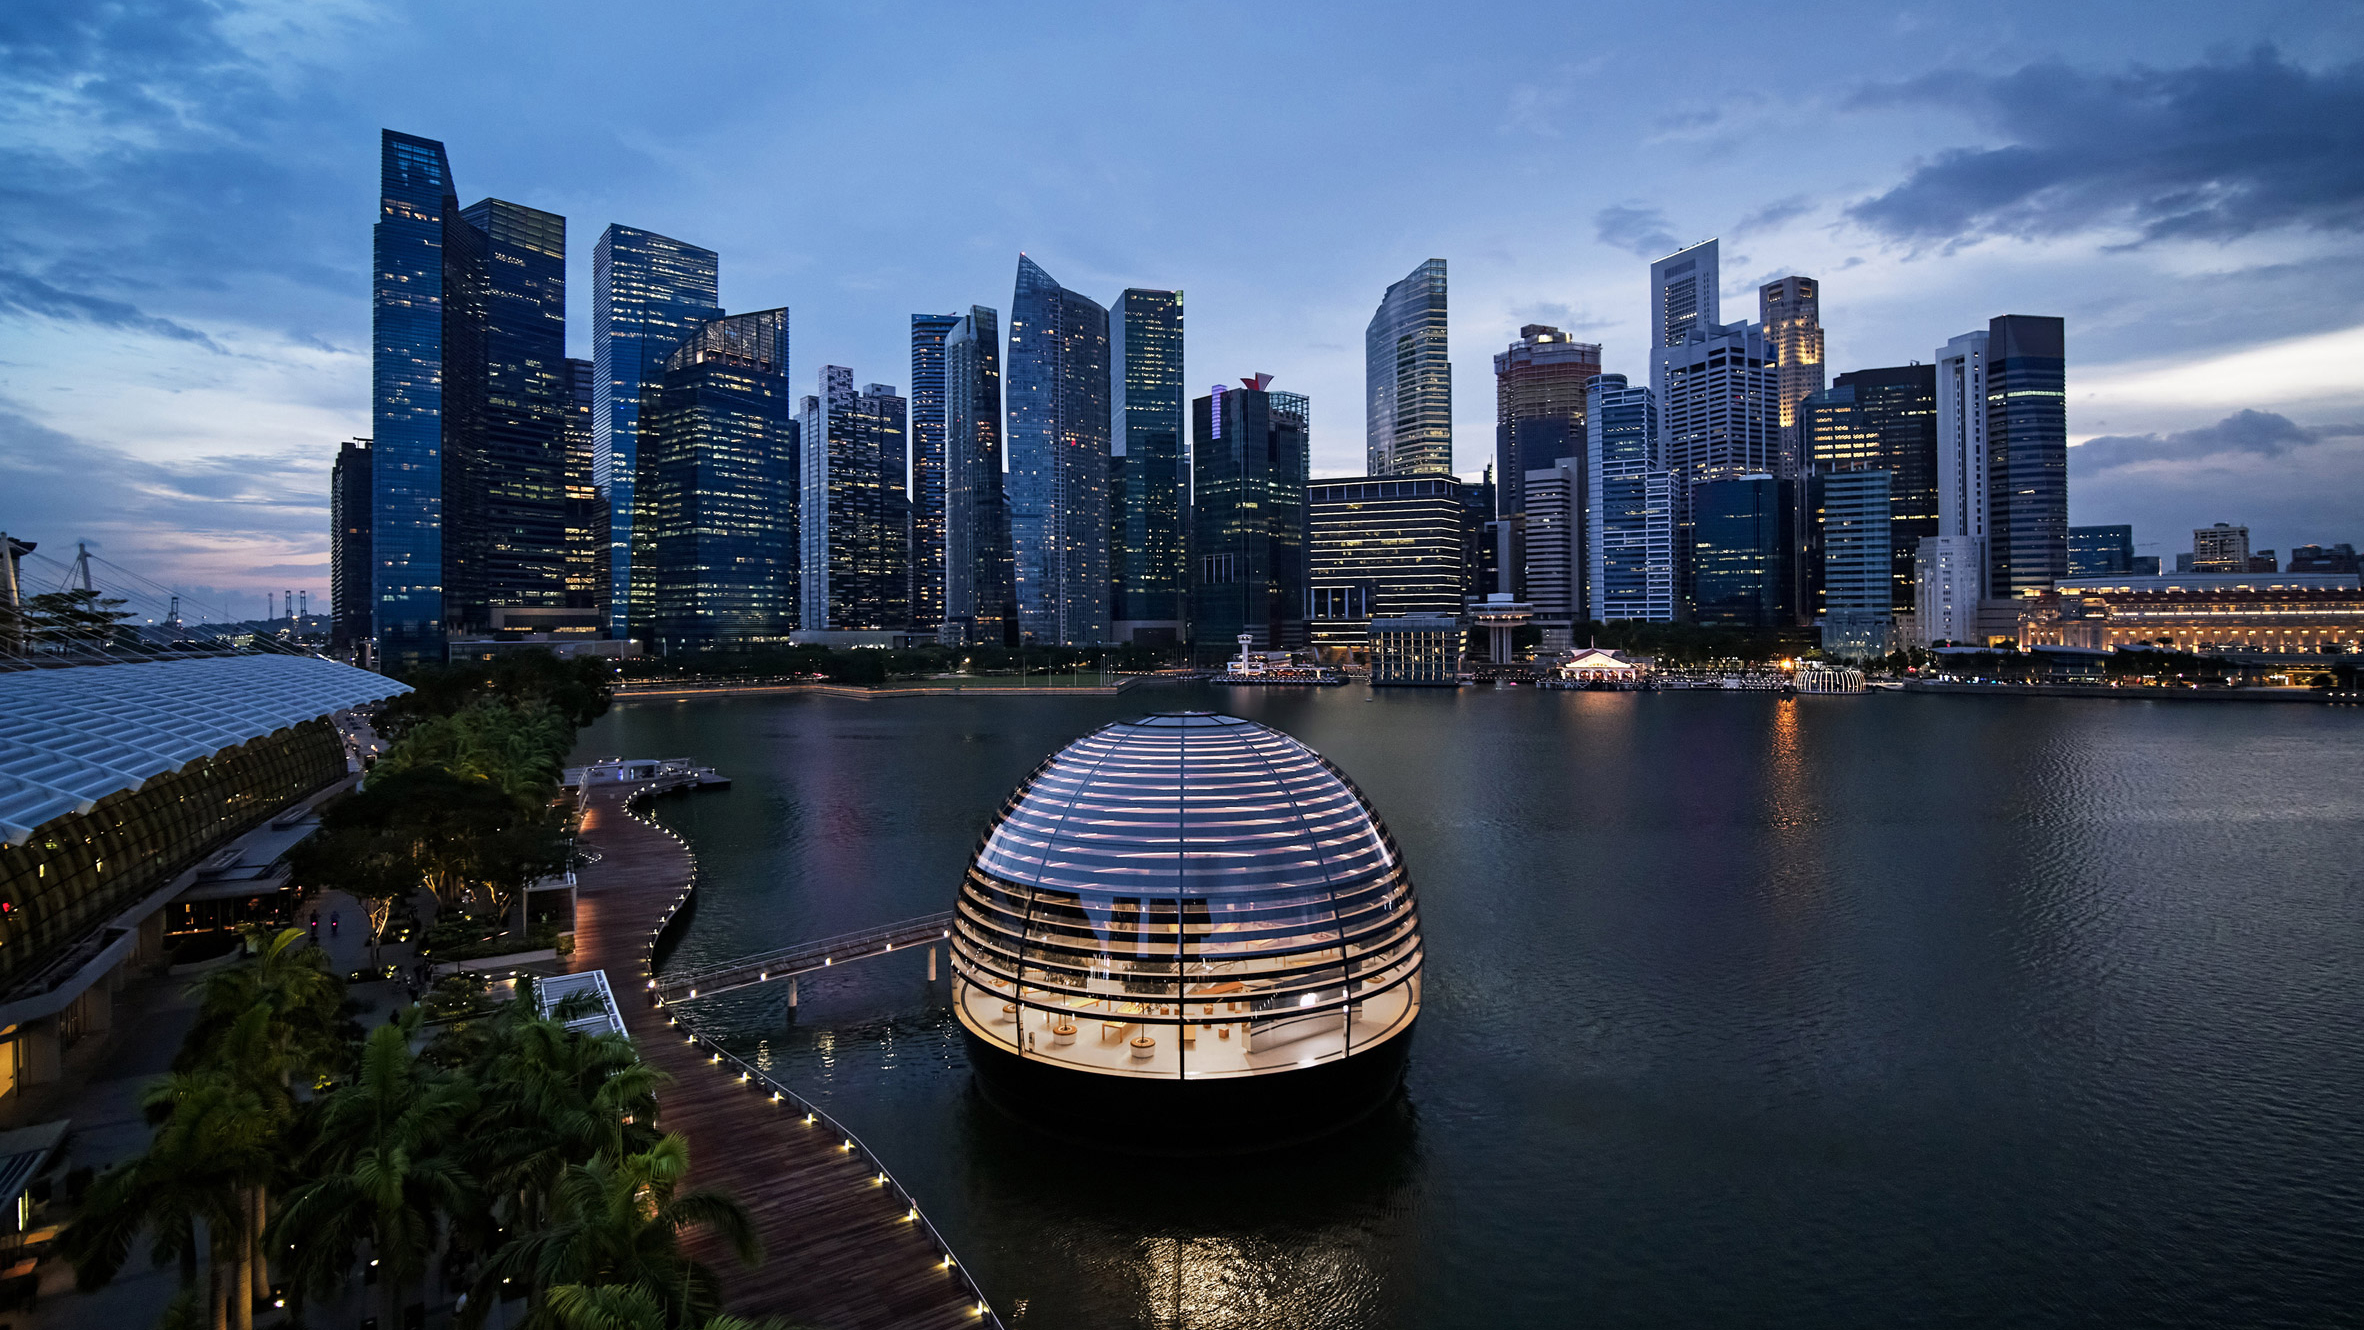 Apple unwraps spherical glass Apple Store in Singapore by Foster + Partners